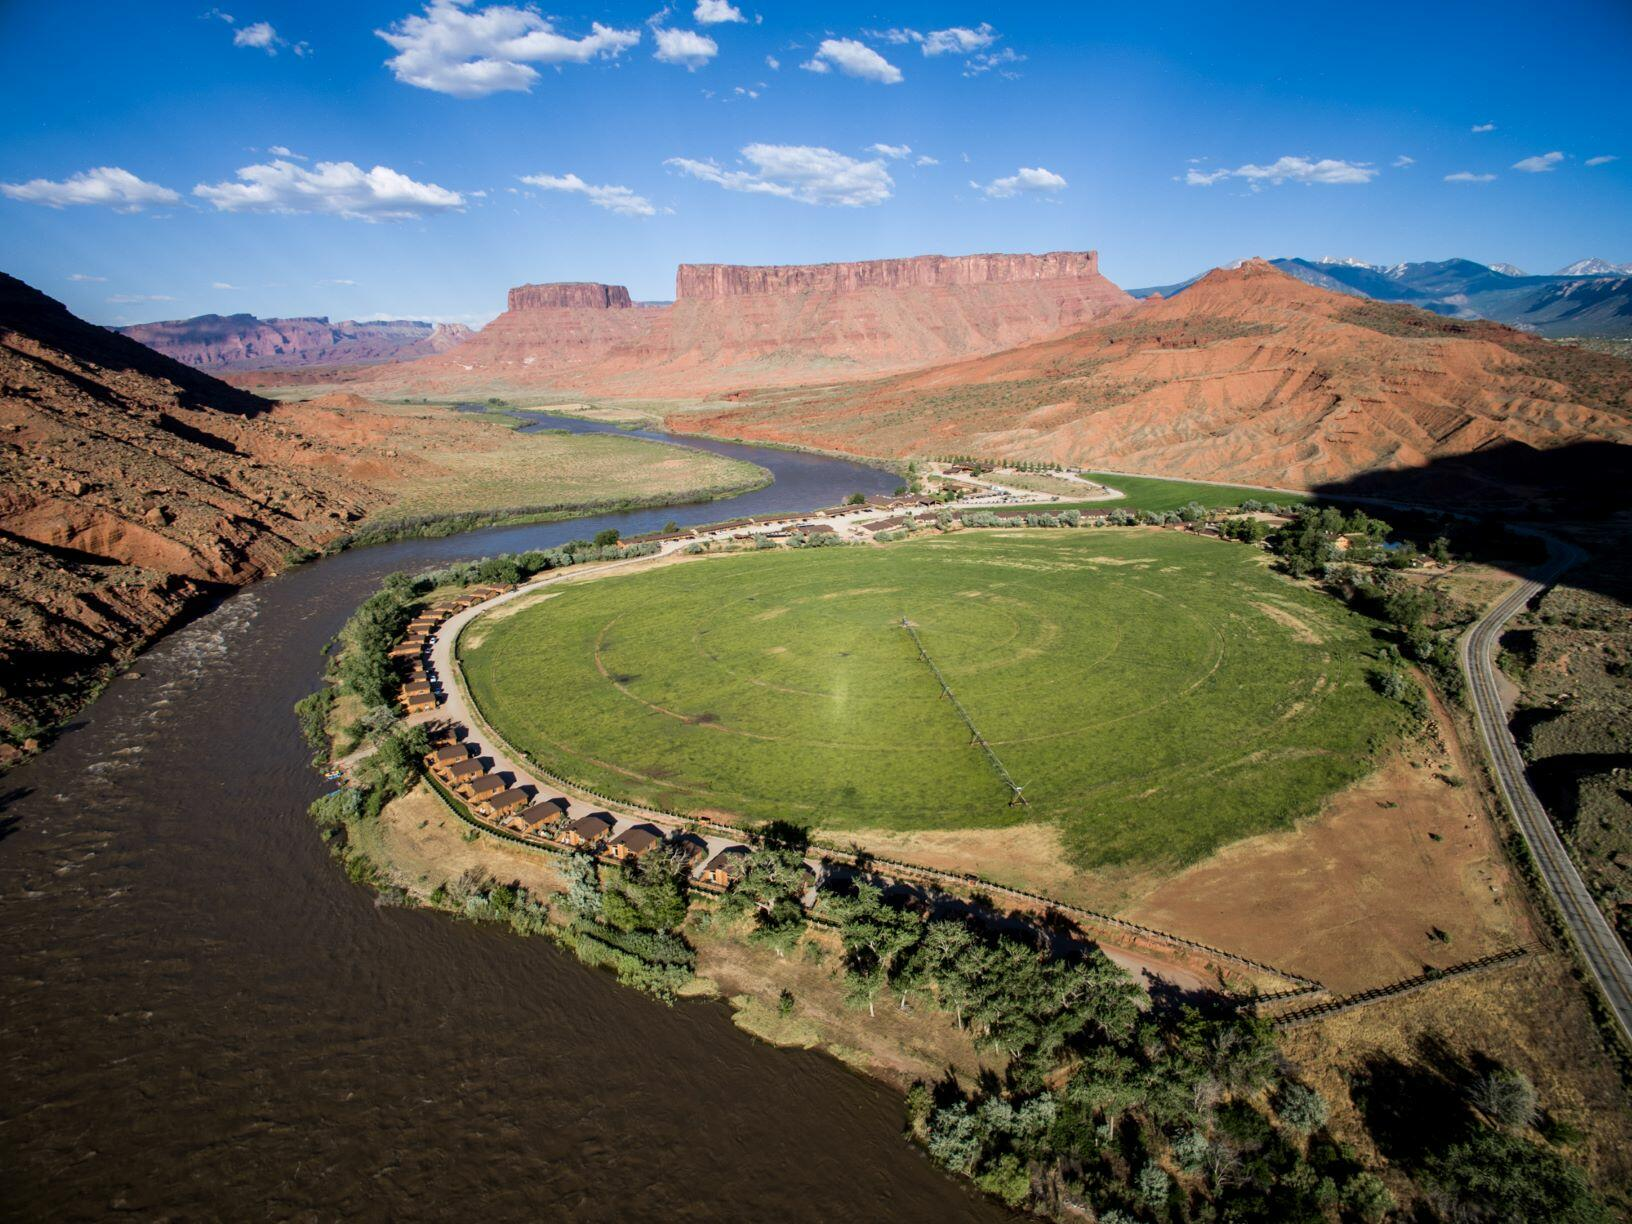 Red Cliffs Lodge with views of Colorado River, Cabin View from Highway 128